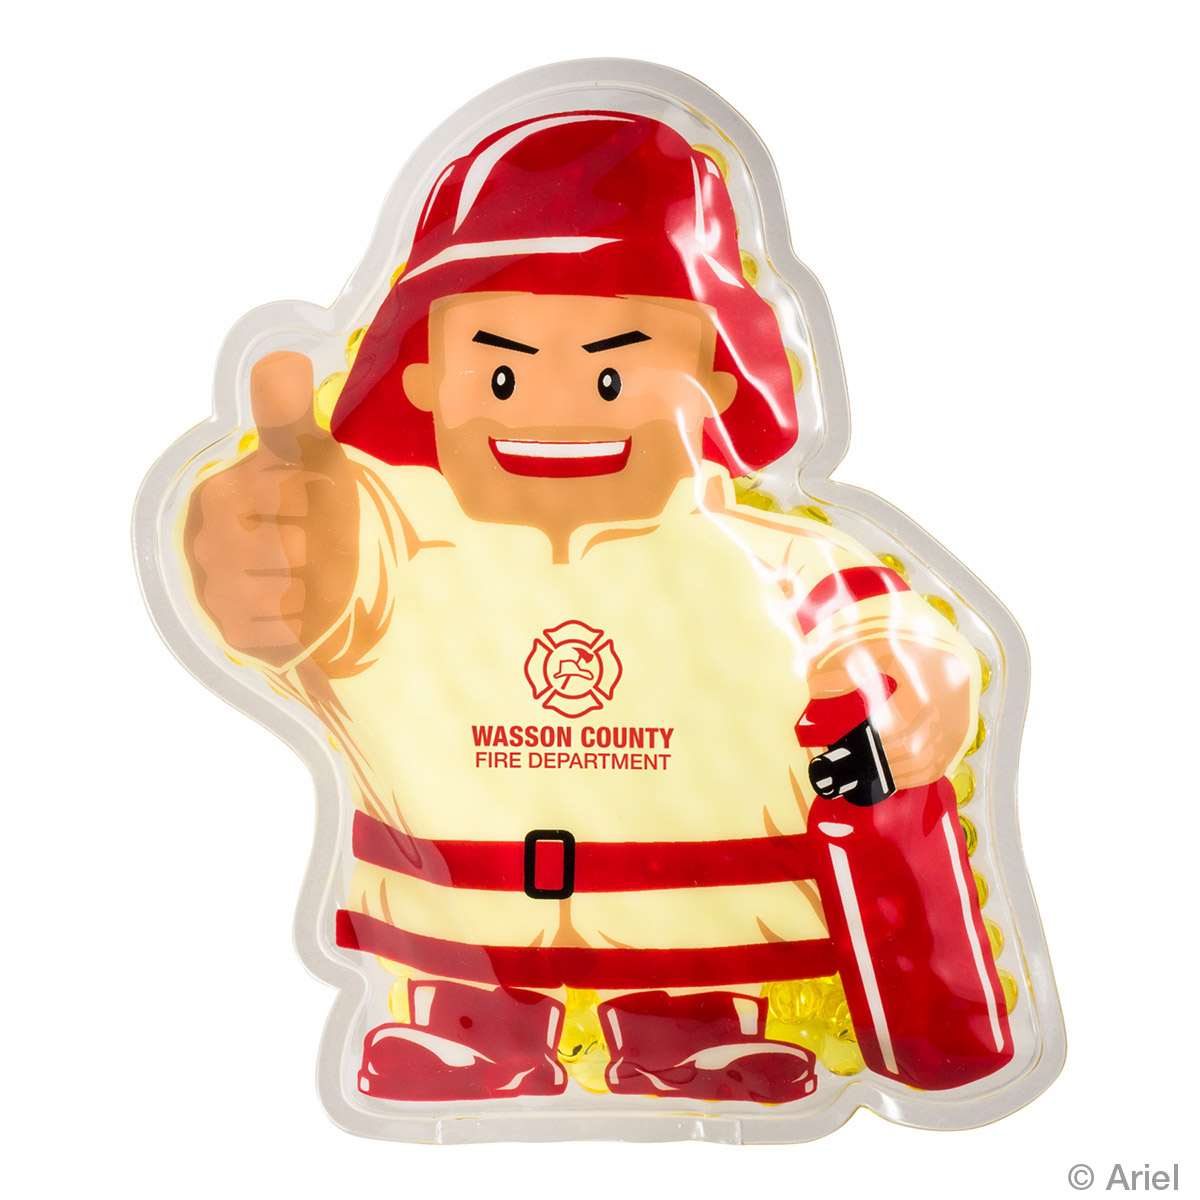 Firefighter Hot/Cold Pack, WHF-FF17 - 1 Colour Imprint